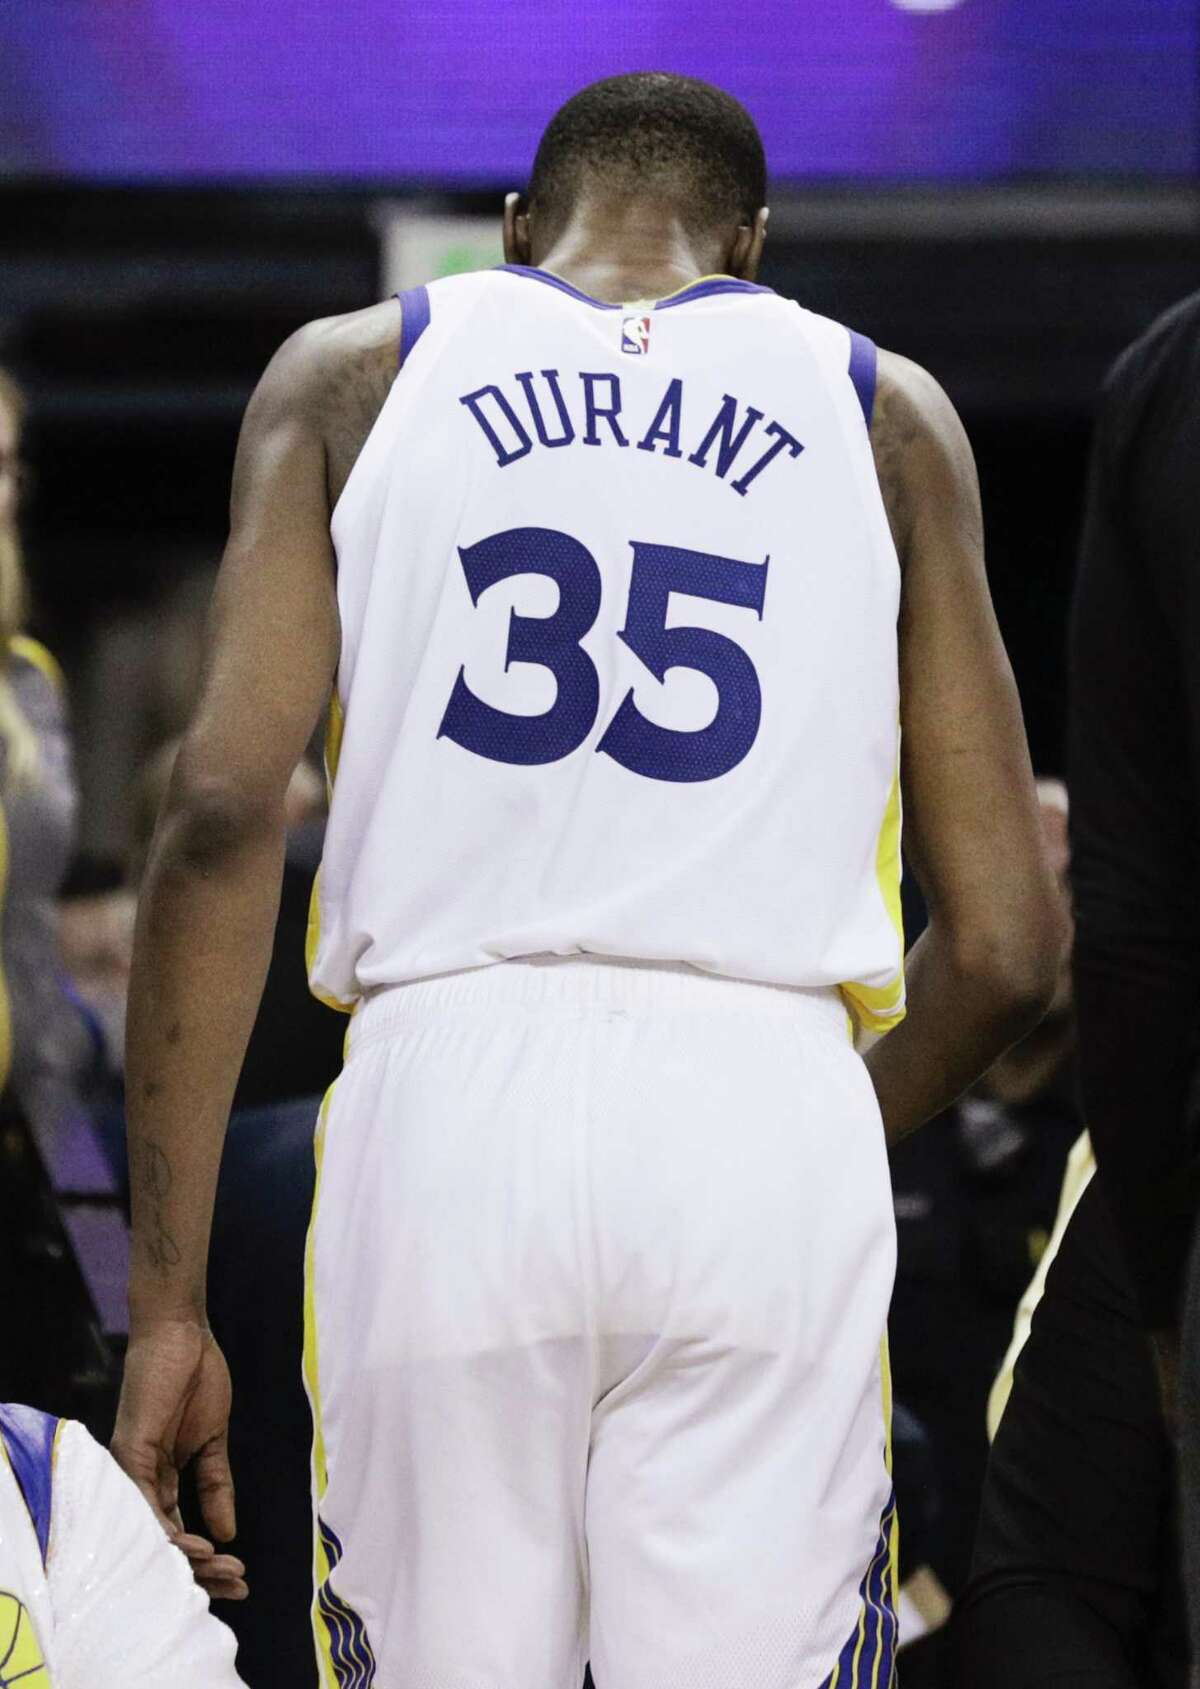 Golden State Warriors Kevin Durant walks to the locker room in the third quarter during game 5 of the Western Conference Semifinals between the Golden State Warriors and the Houston Rockets at Oracle Arena on Wednesday, May 8, 2019 in Oakland, Calif.